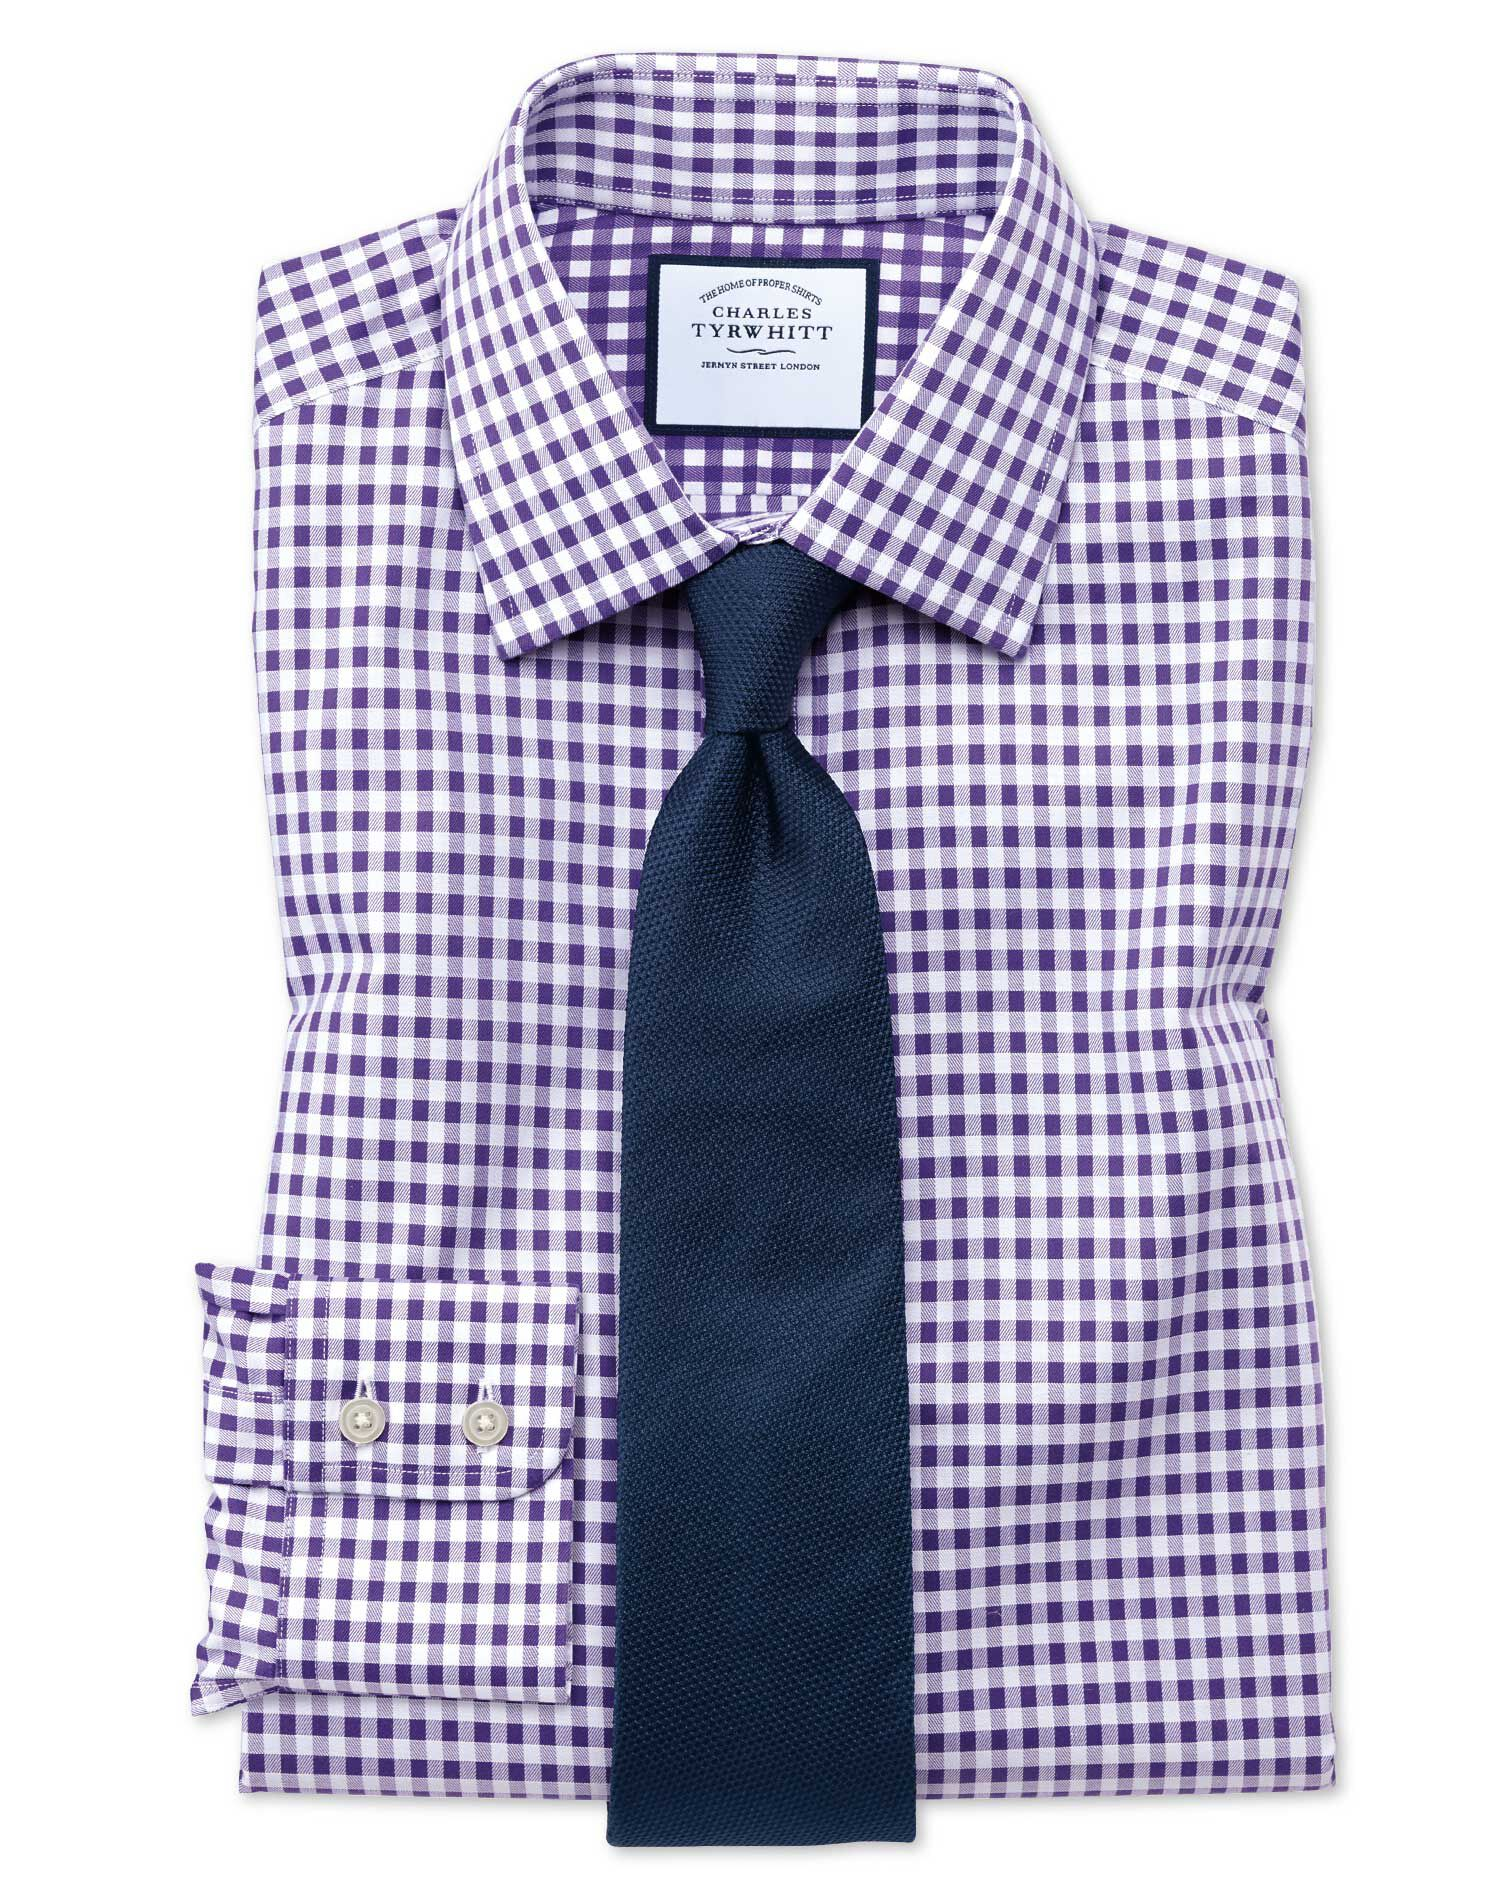 Extra Slim Fit Non-Iron Gingham Purple Cotton Formal Shirt Single Cuff Size 15/32 by Charles Tyrwhit